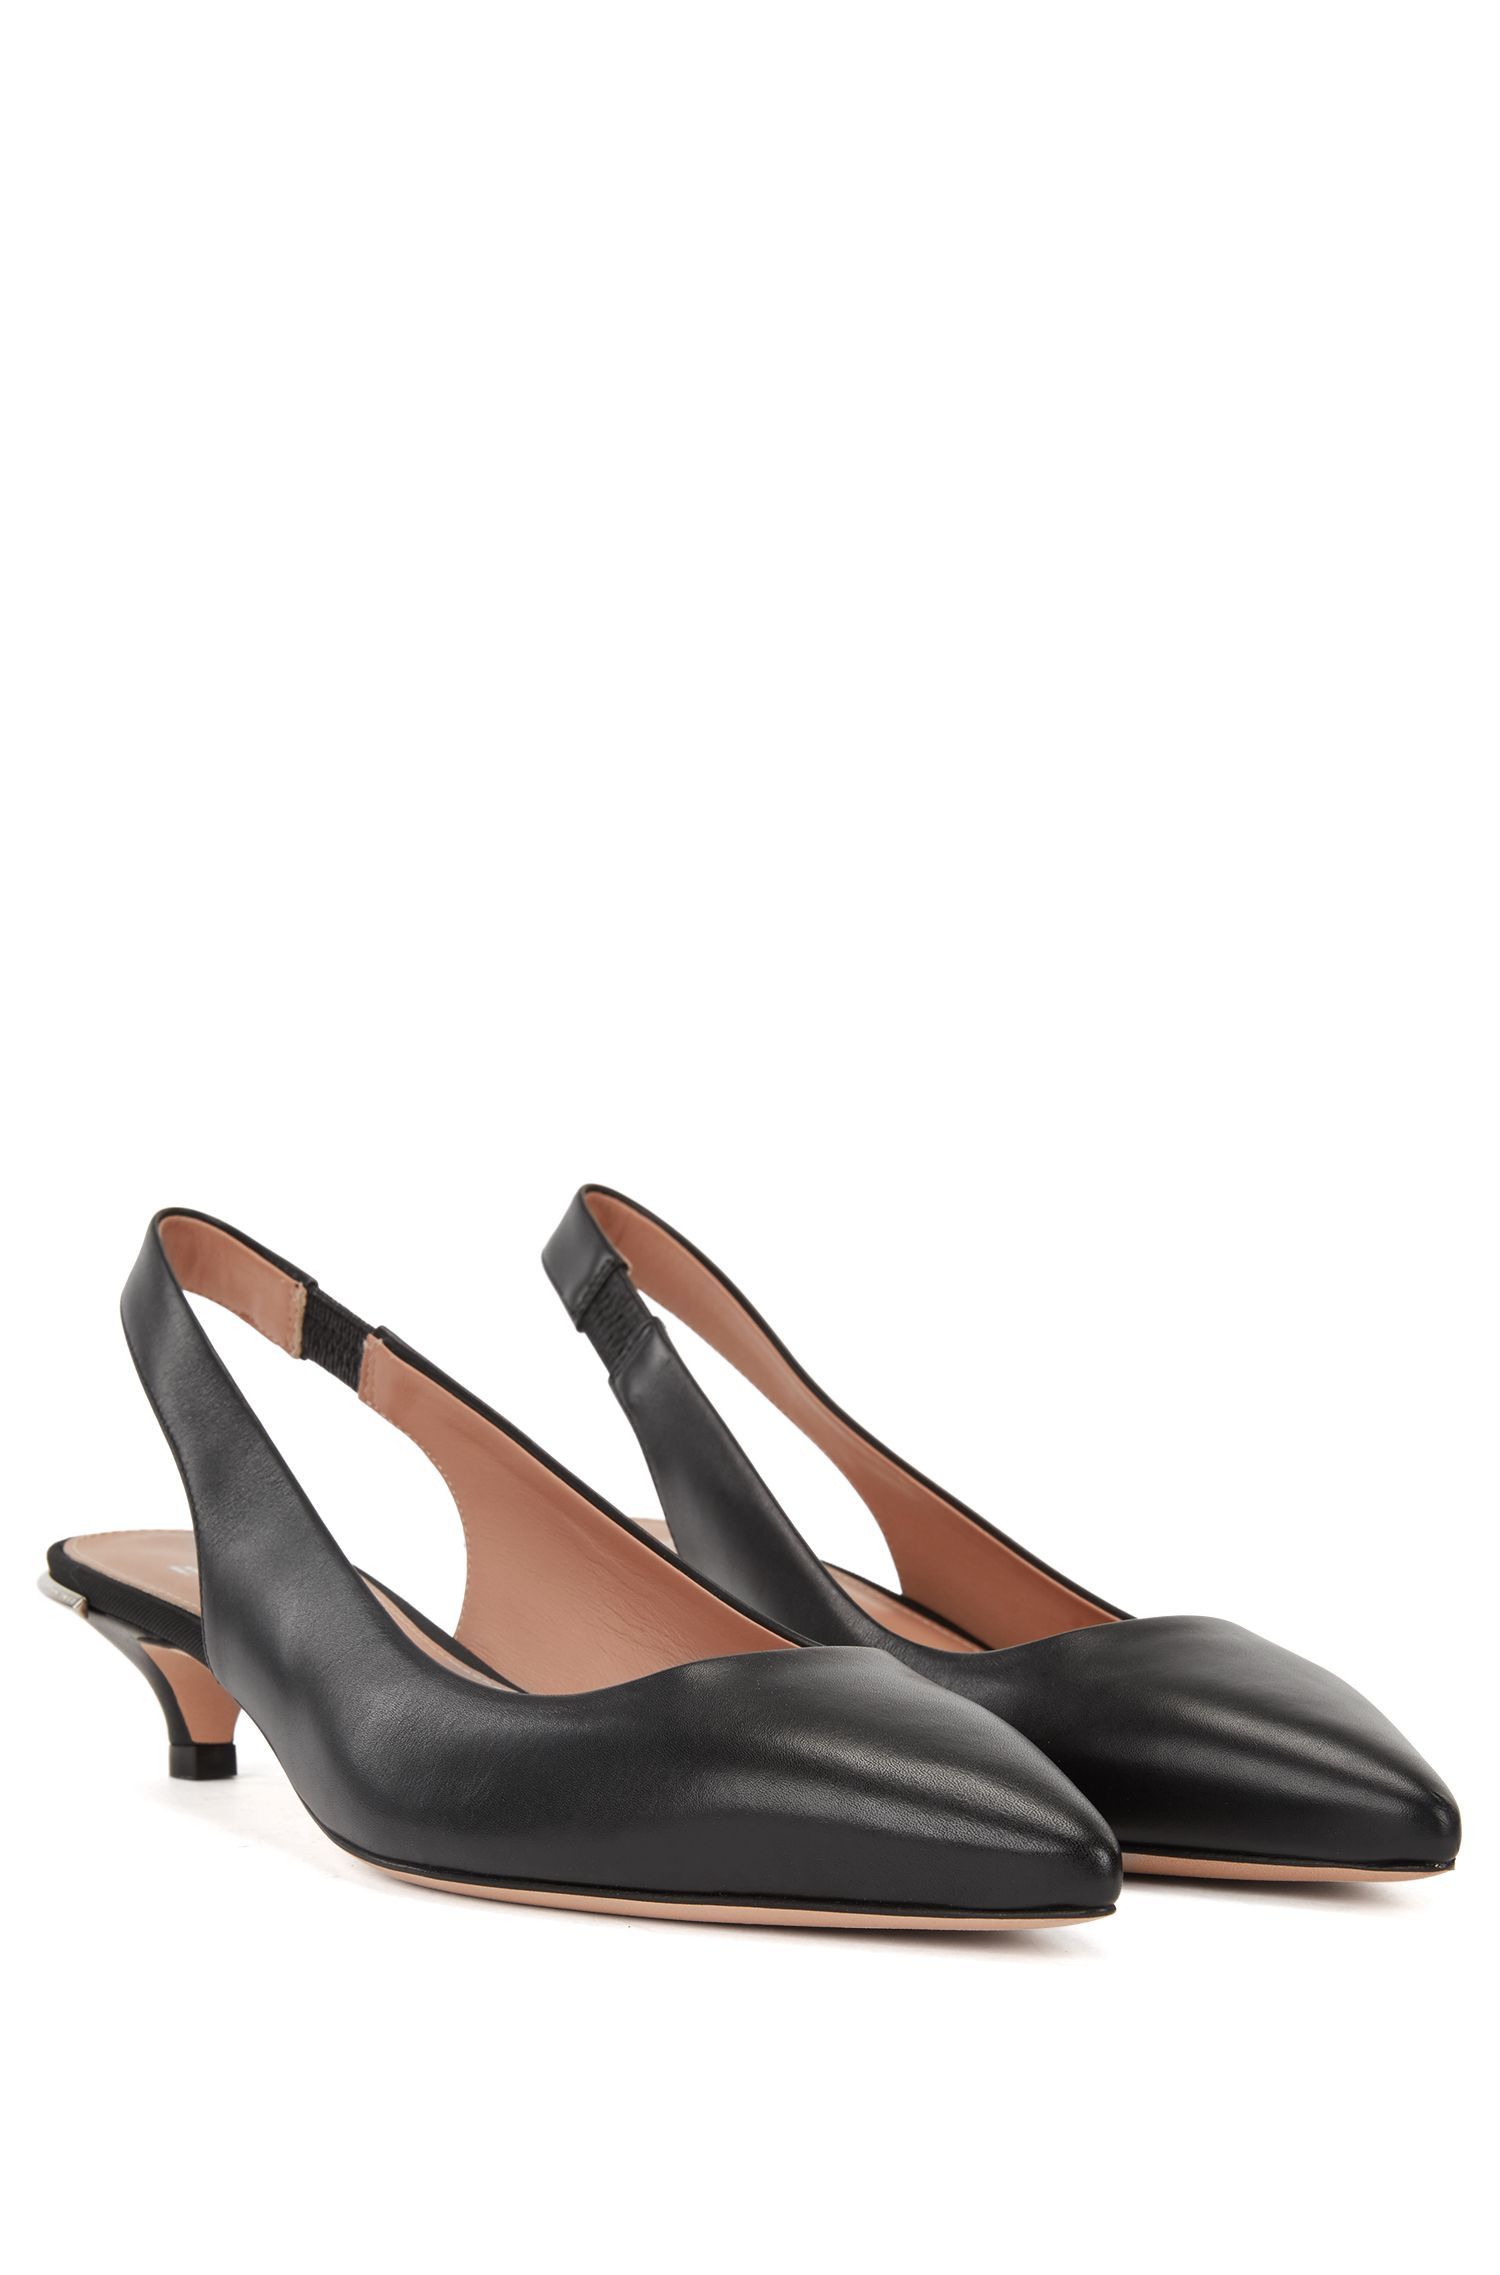 Calf-leather pumps with silver-trimmed kitten heel BOSS